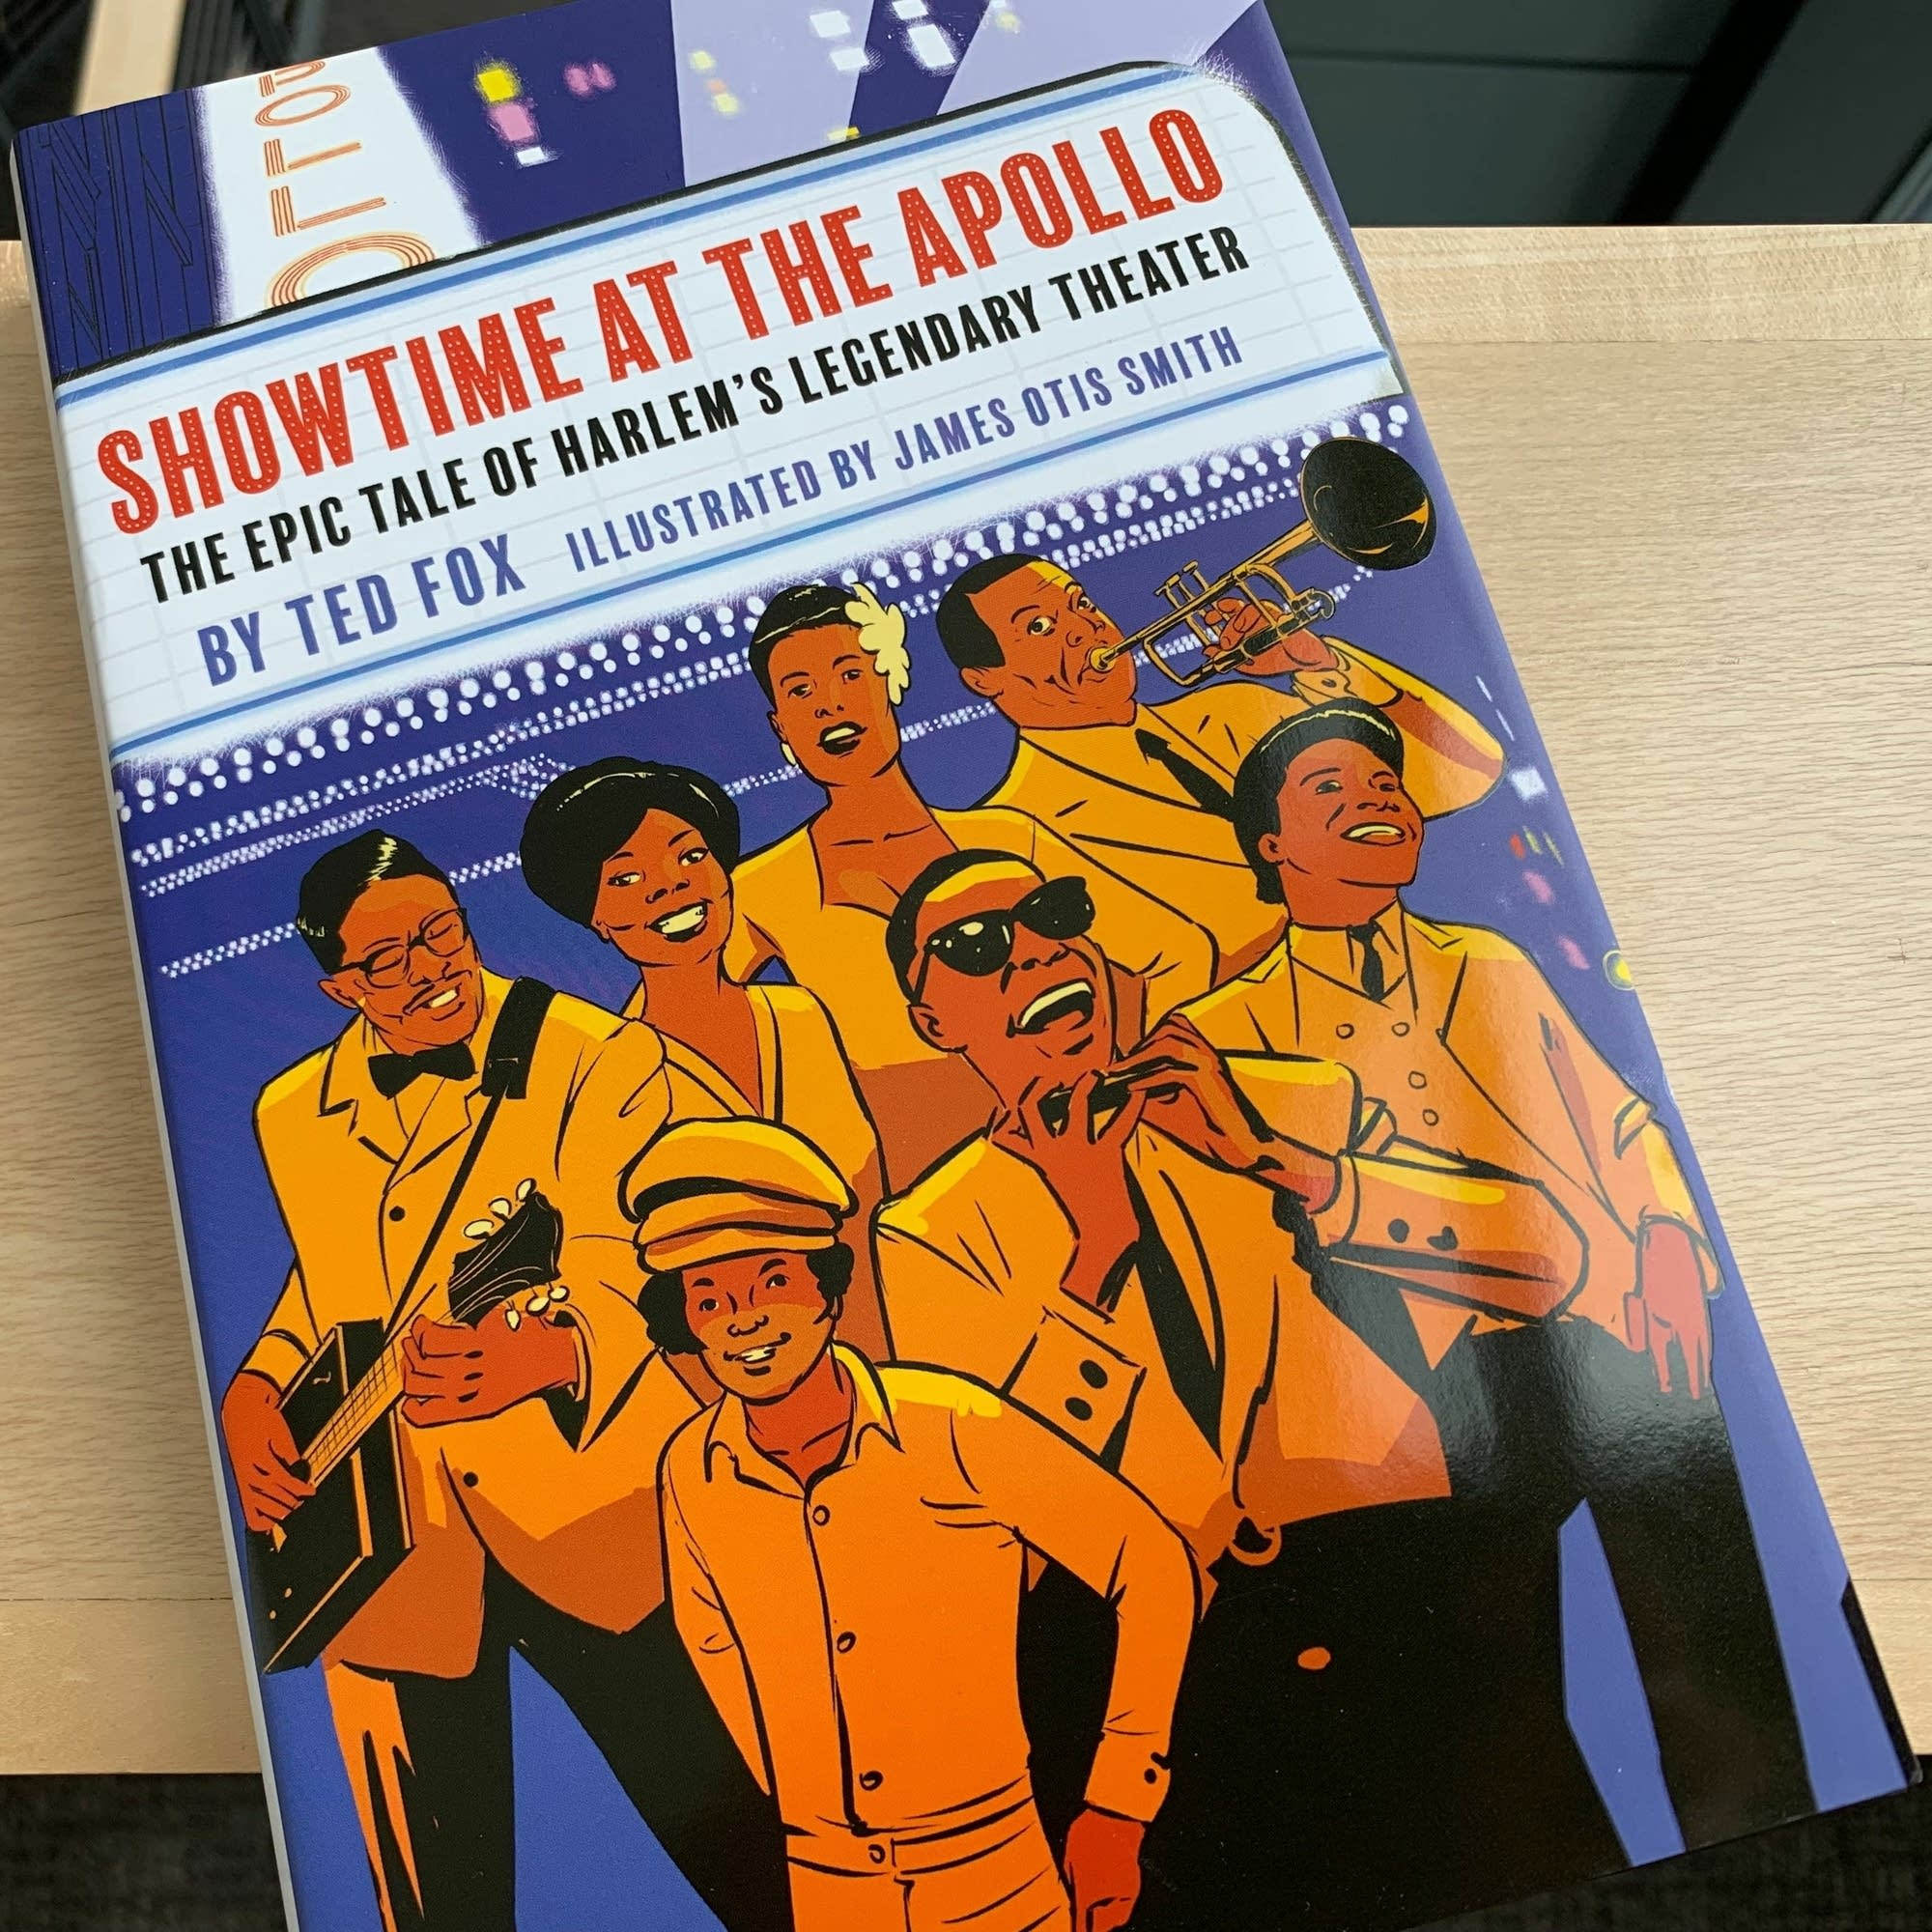 'Showtime at the Apollo: The Epic Tale of Harlem's Legendary Theater.'